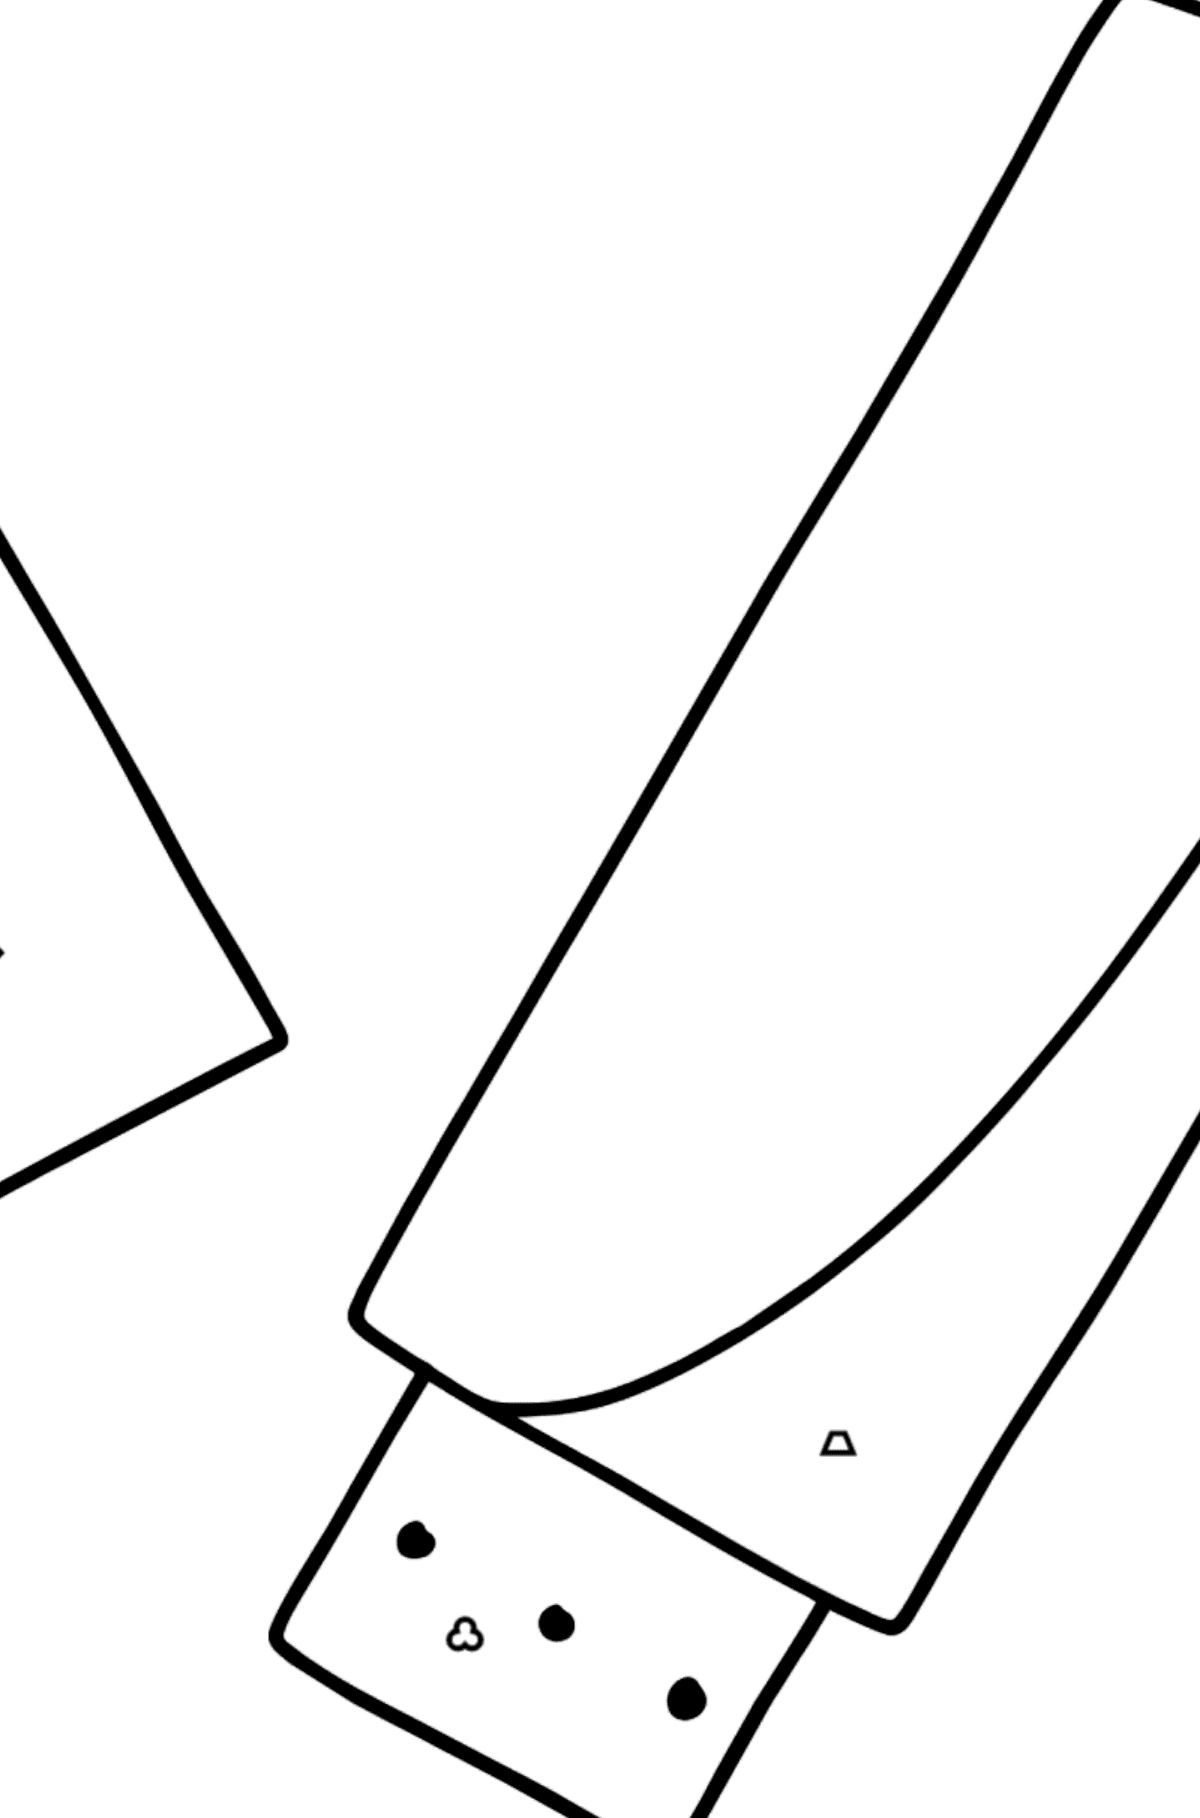 Flash Drive coloring page - Coloring by Geometric Shapes for Kids